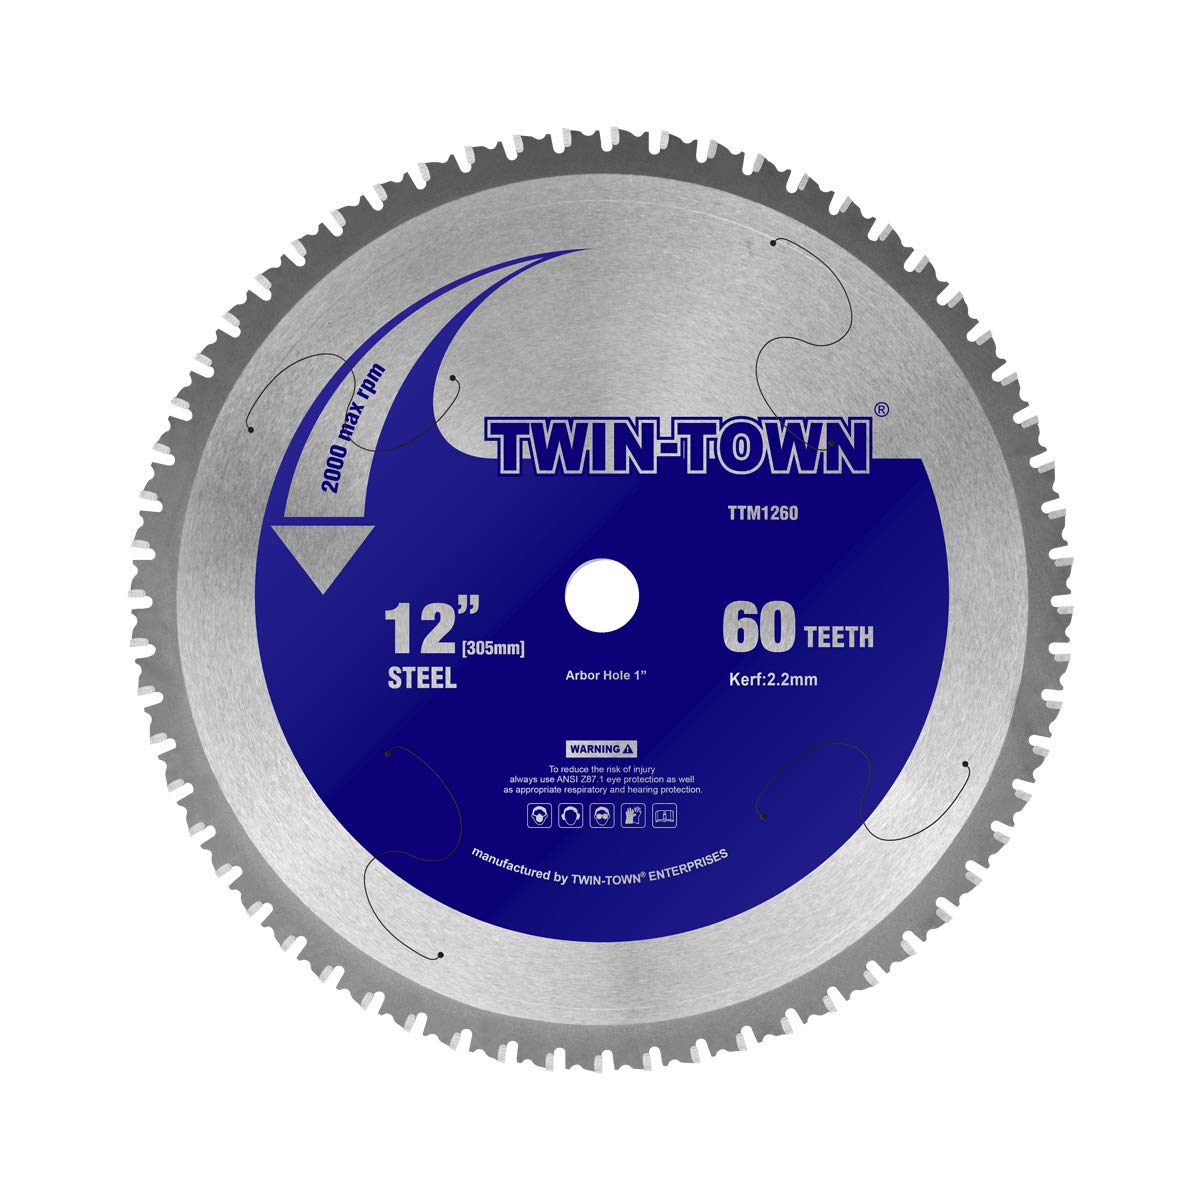 TWIN-TOWN 12-Inch 60 Teeth Steel and Ferrous Metal Saw Blade with 1-Inch Arbor